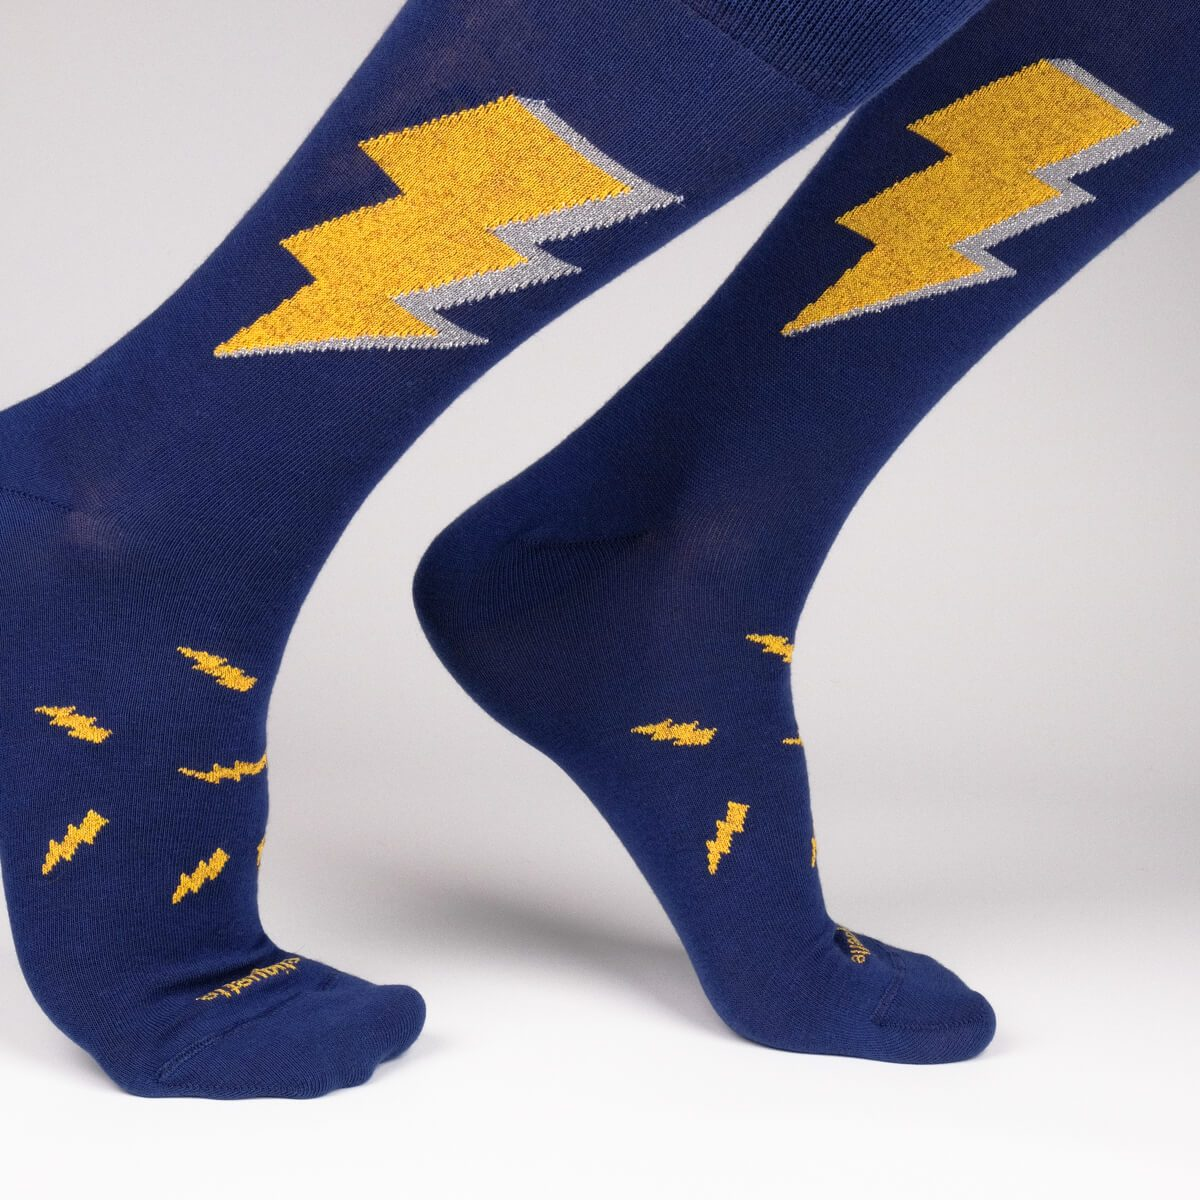 Popist - Blue - Mens Socks | Etiquette Clothiers Global Official